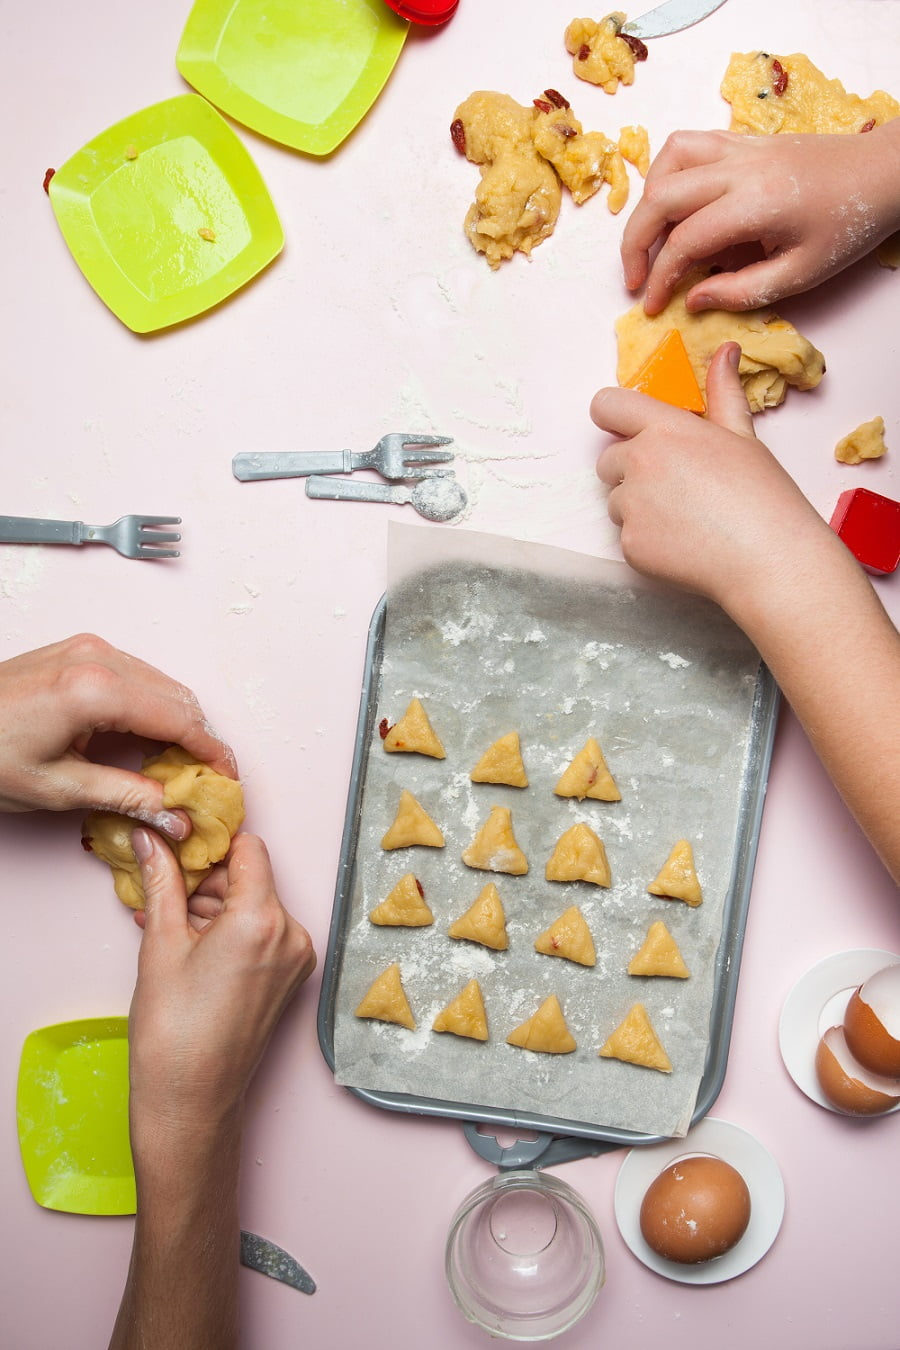 5 Tips to get your kids involved in meal prep